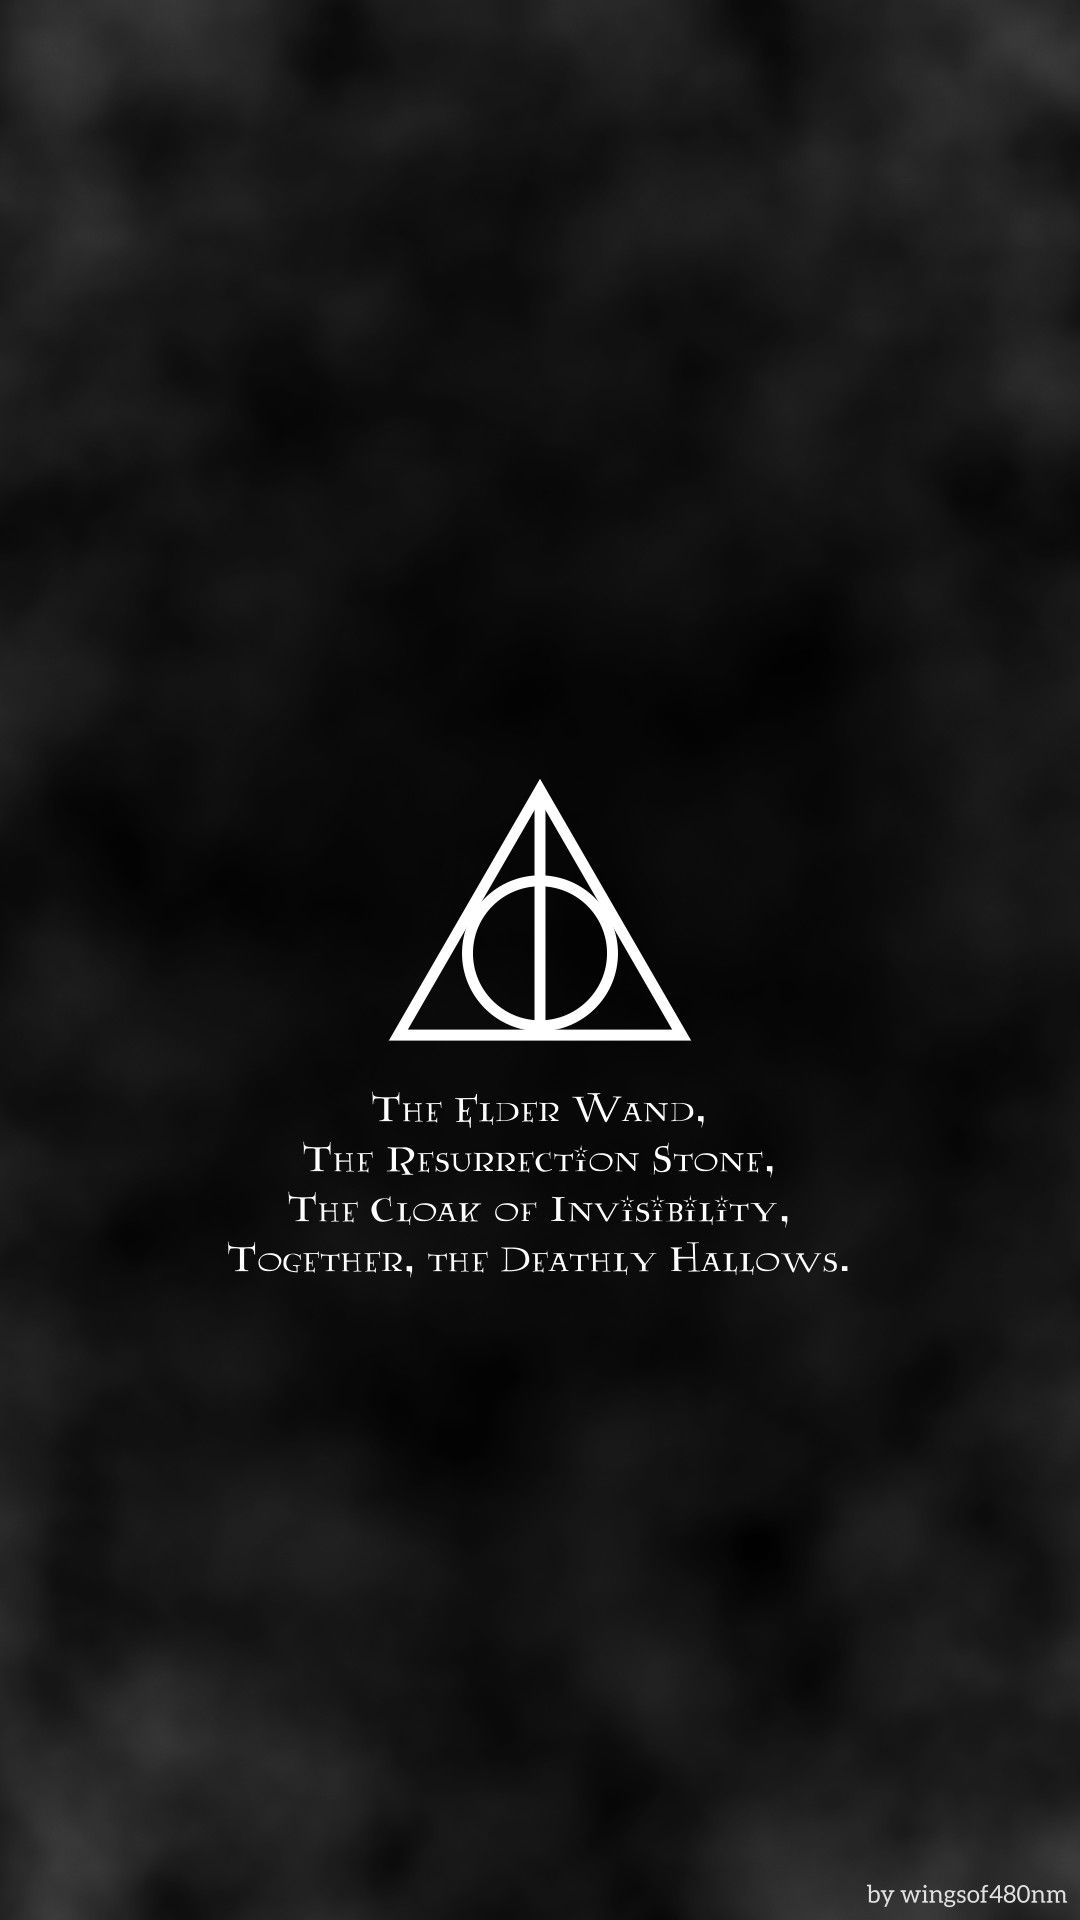 Harry Potter Wallpaper Hd Hupages Download Iphone Wallpapers Harry Potter Wallpaper Phone Harry Potter Wallpaper Harry Potter Iphone Wallpaper